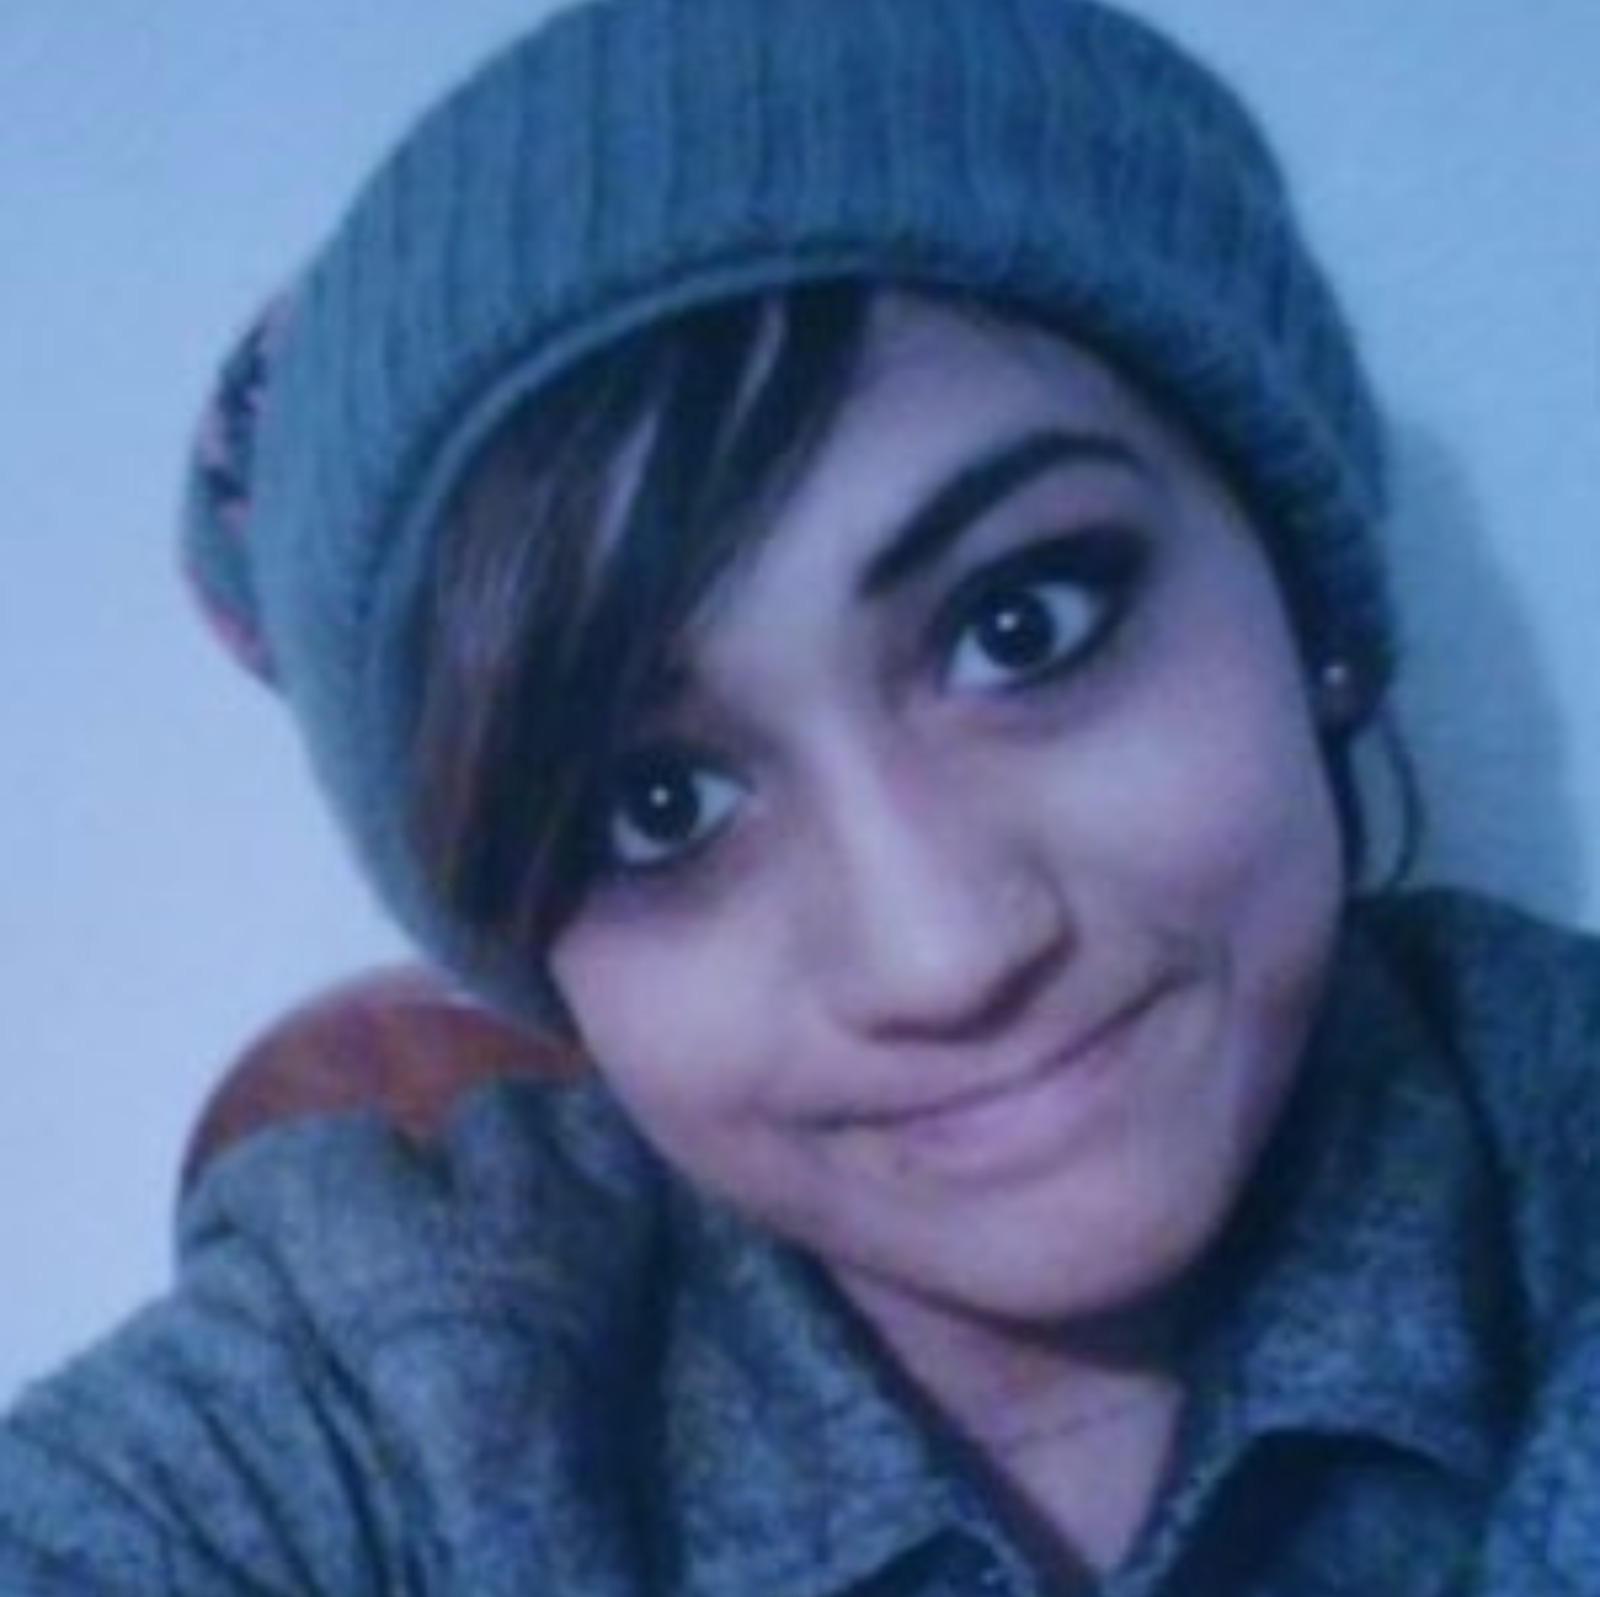 Police Appeal To Find Missing 21 Year Old Woman Wales